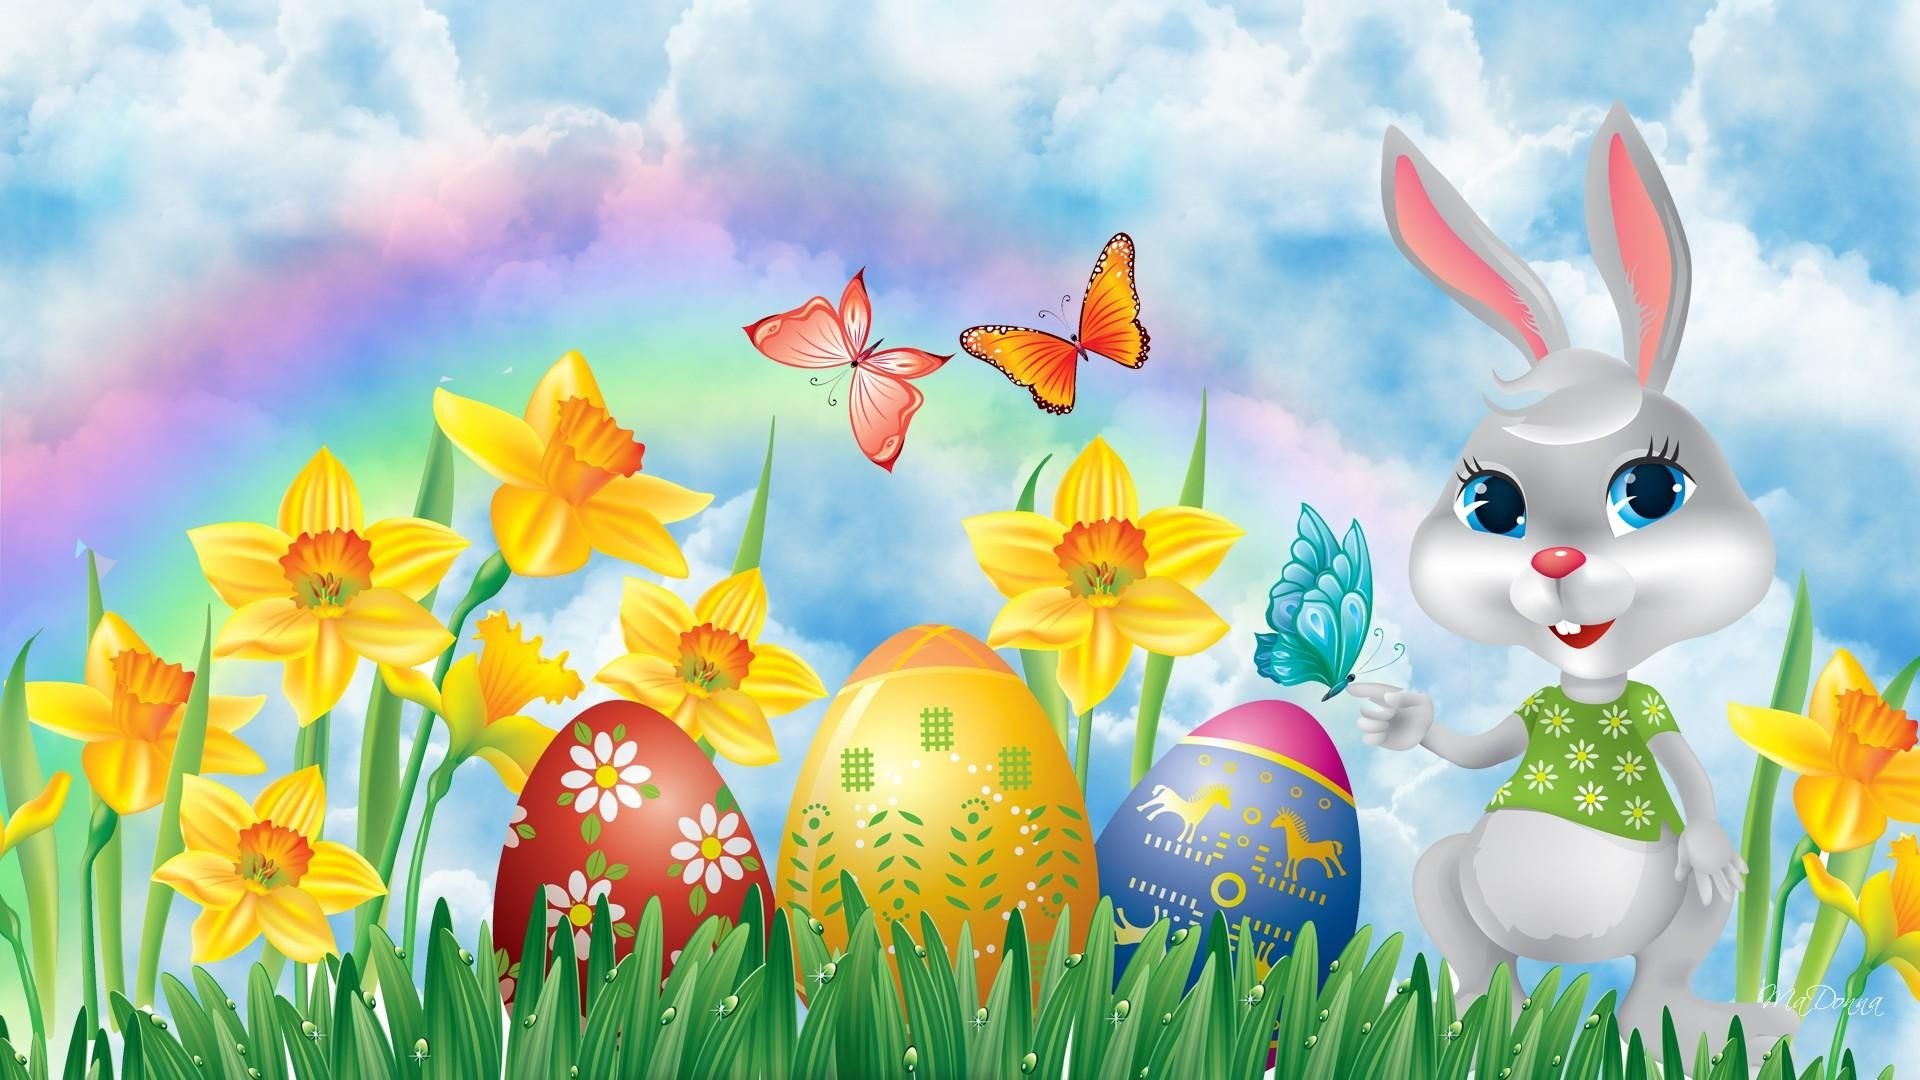 1920x1080 Easter Wallpapers for Desktop | Happy Easter HD - Wallpaper, High  Definition…